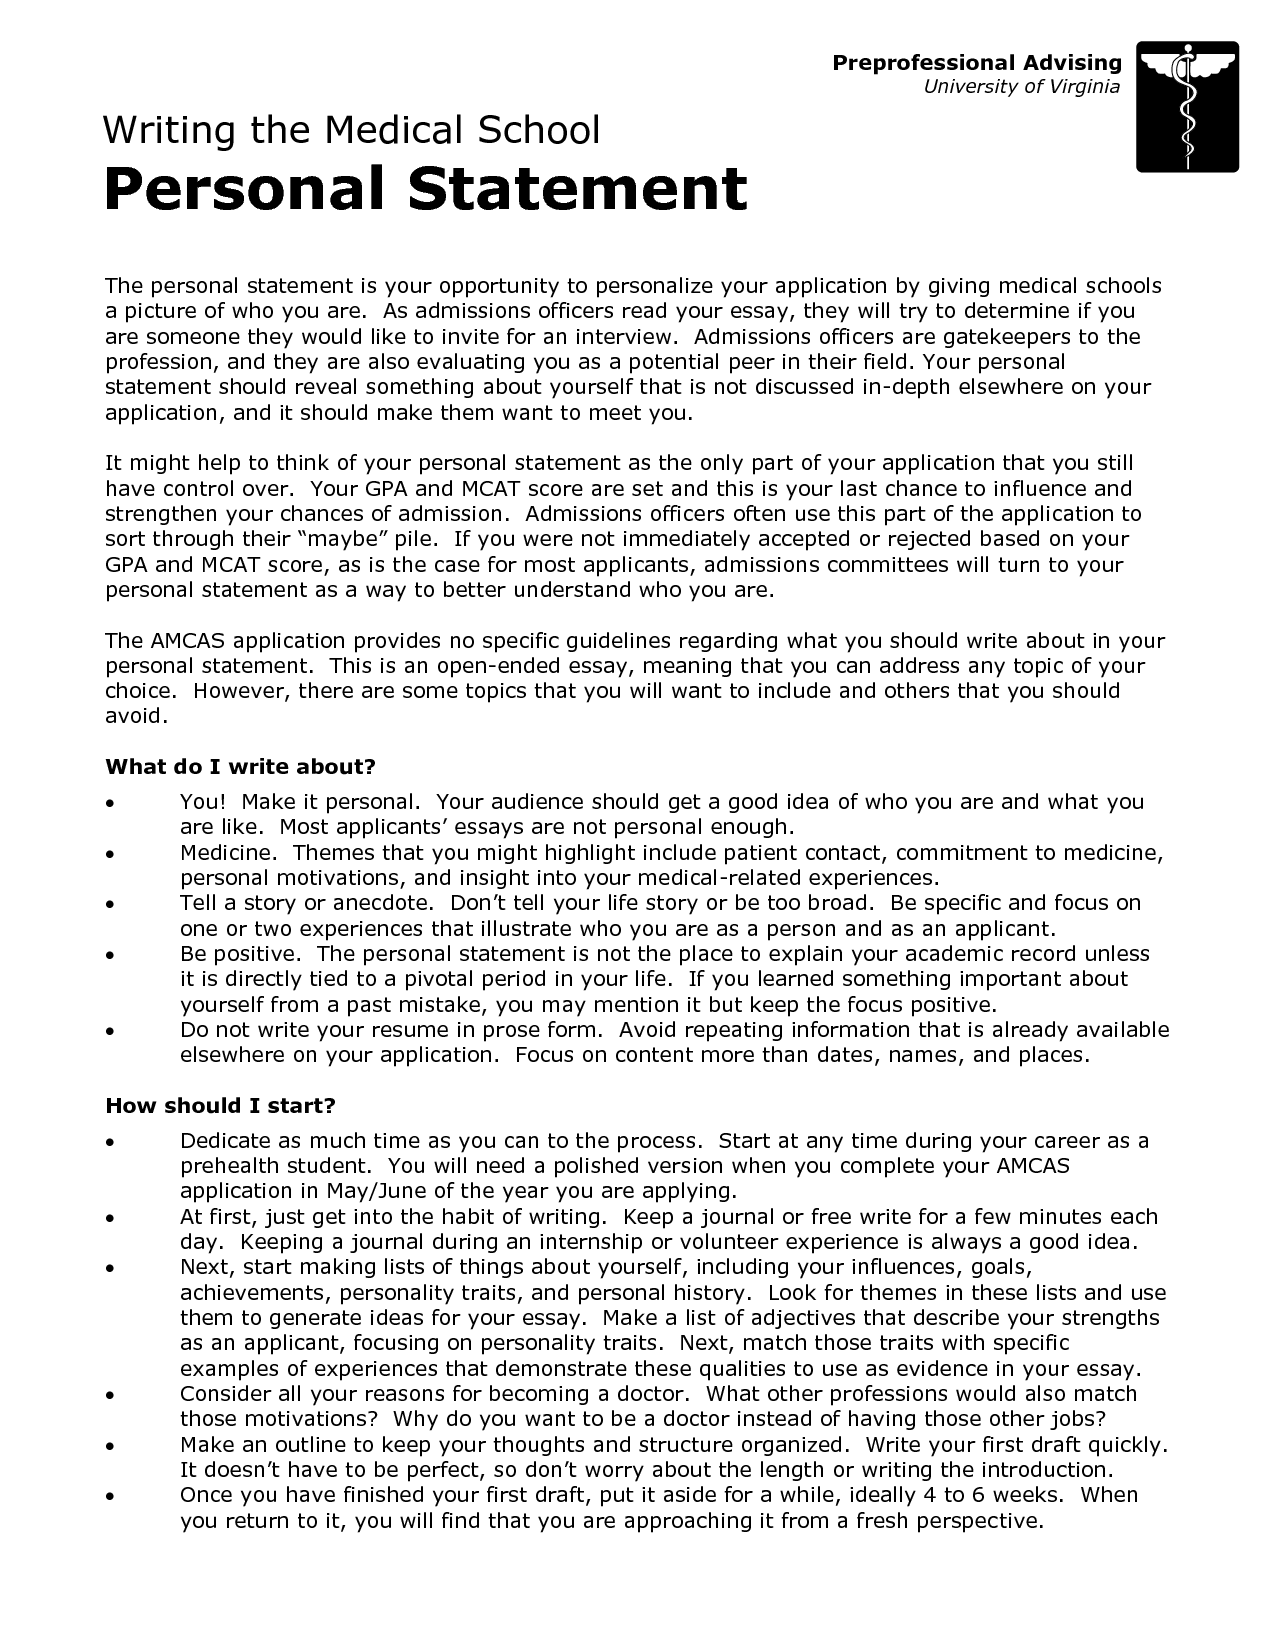 College admission personal statement example